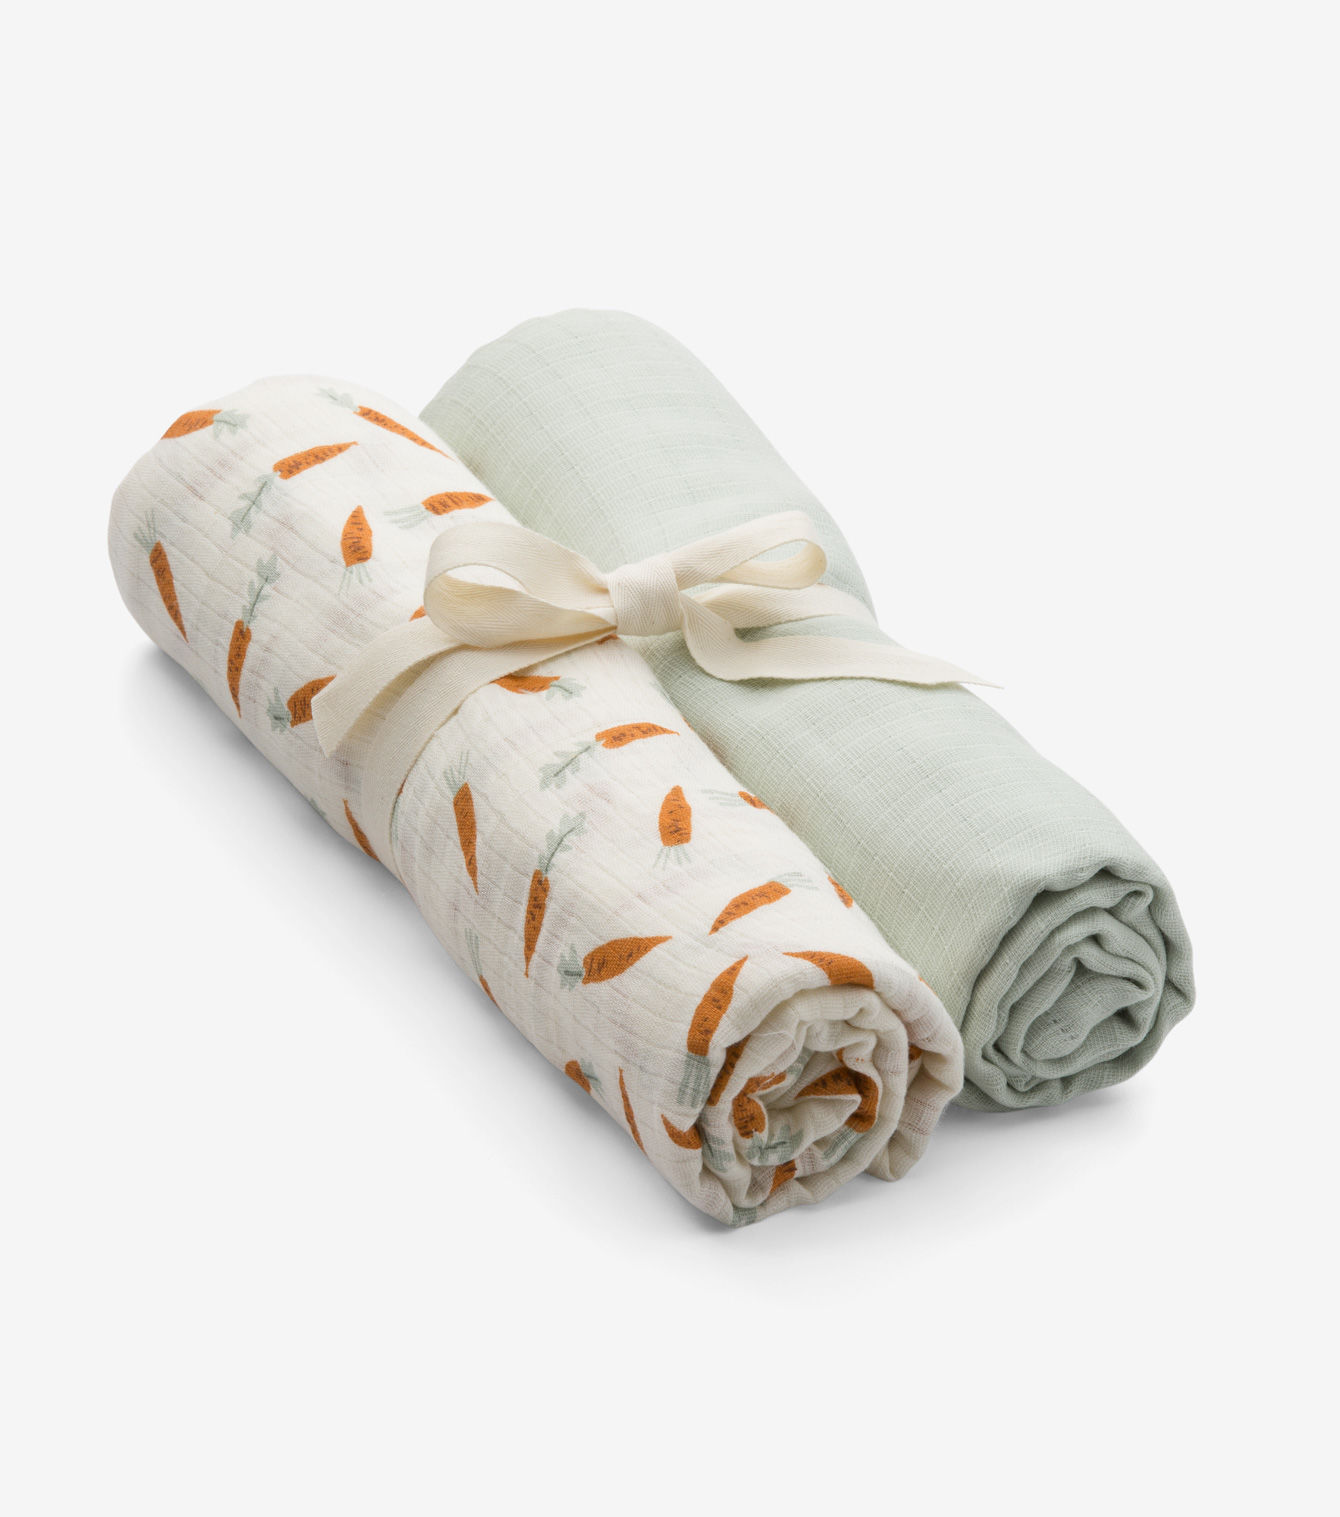 1FLC3013_small-and-mighty-carrots-swaddle-set-01_1118_001.jpg